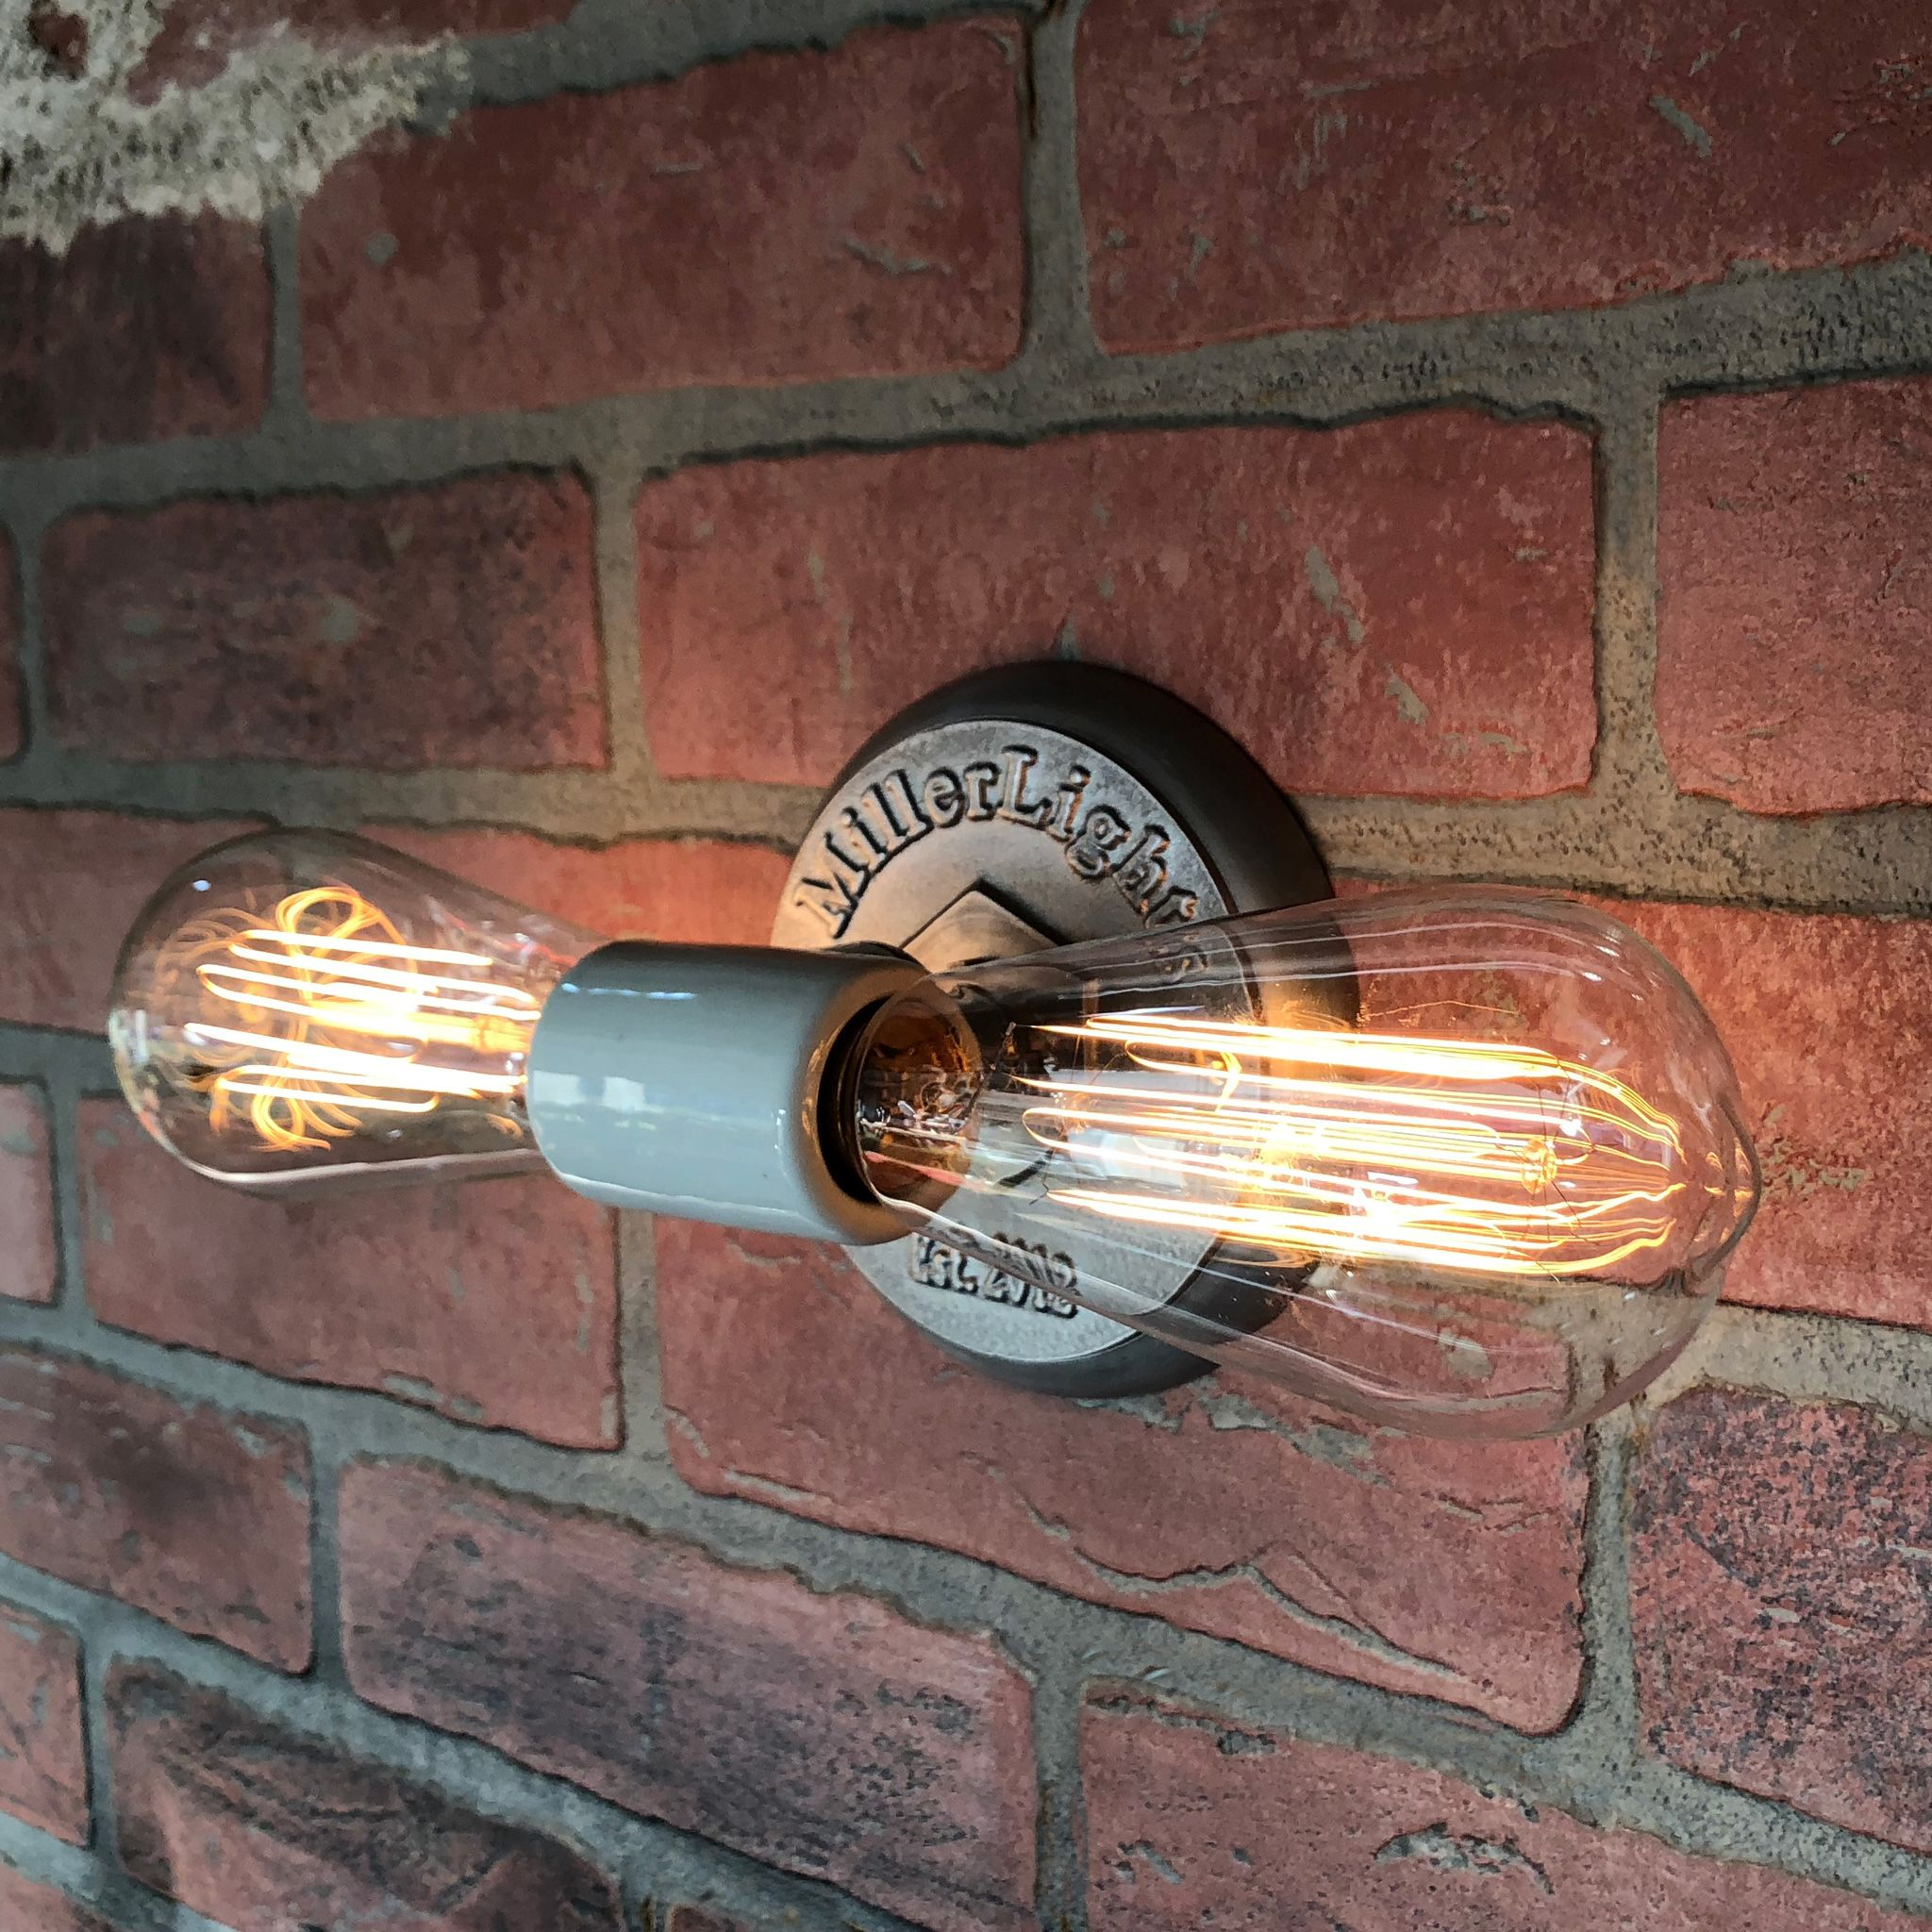 Double Bare Bulb Light Fixture Industrial Wall Sconce With Etsy In 2020 Bare Bulb Lighting Industrial Wall Sconce Industrial Light Fixtures